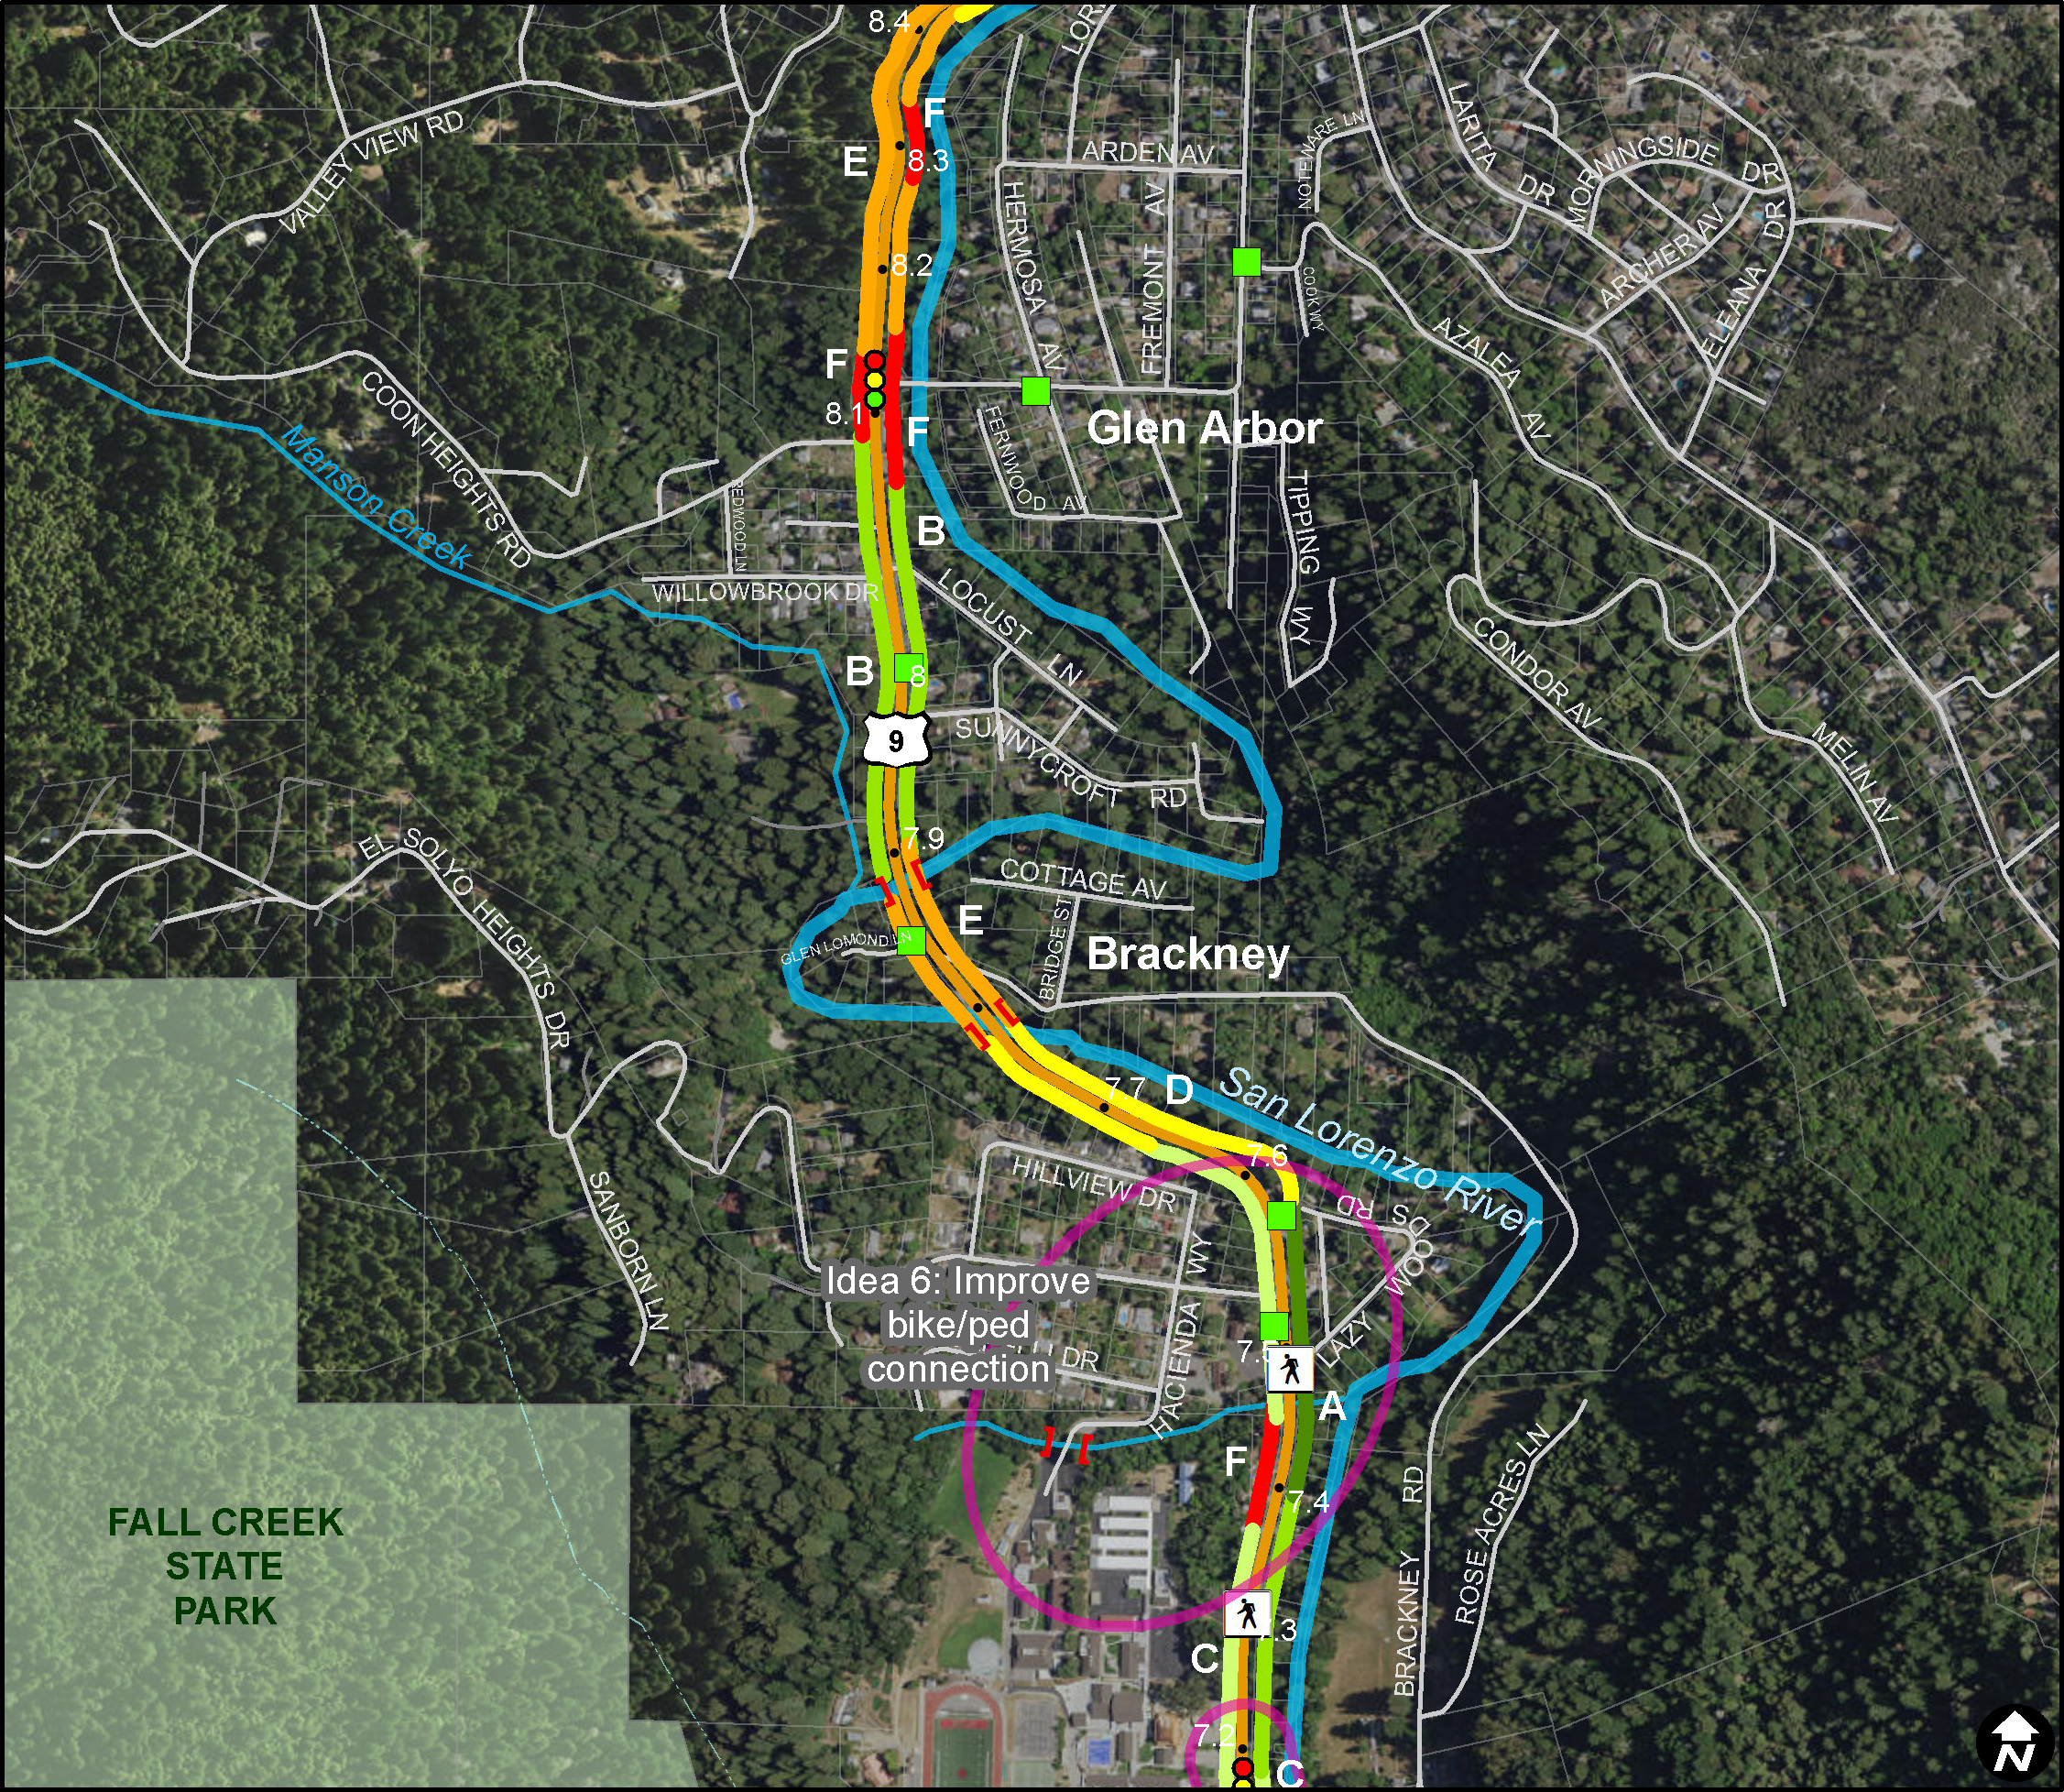 Route Conditions Study Map